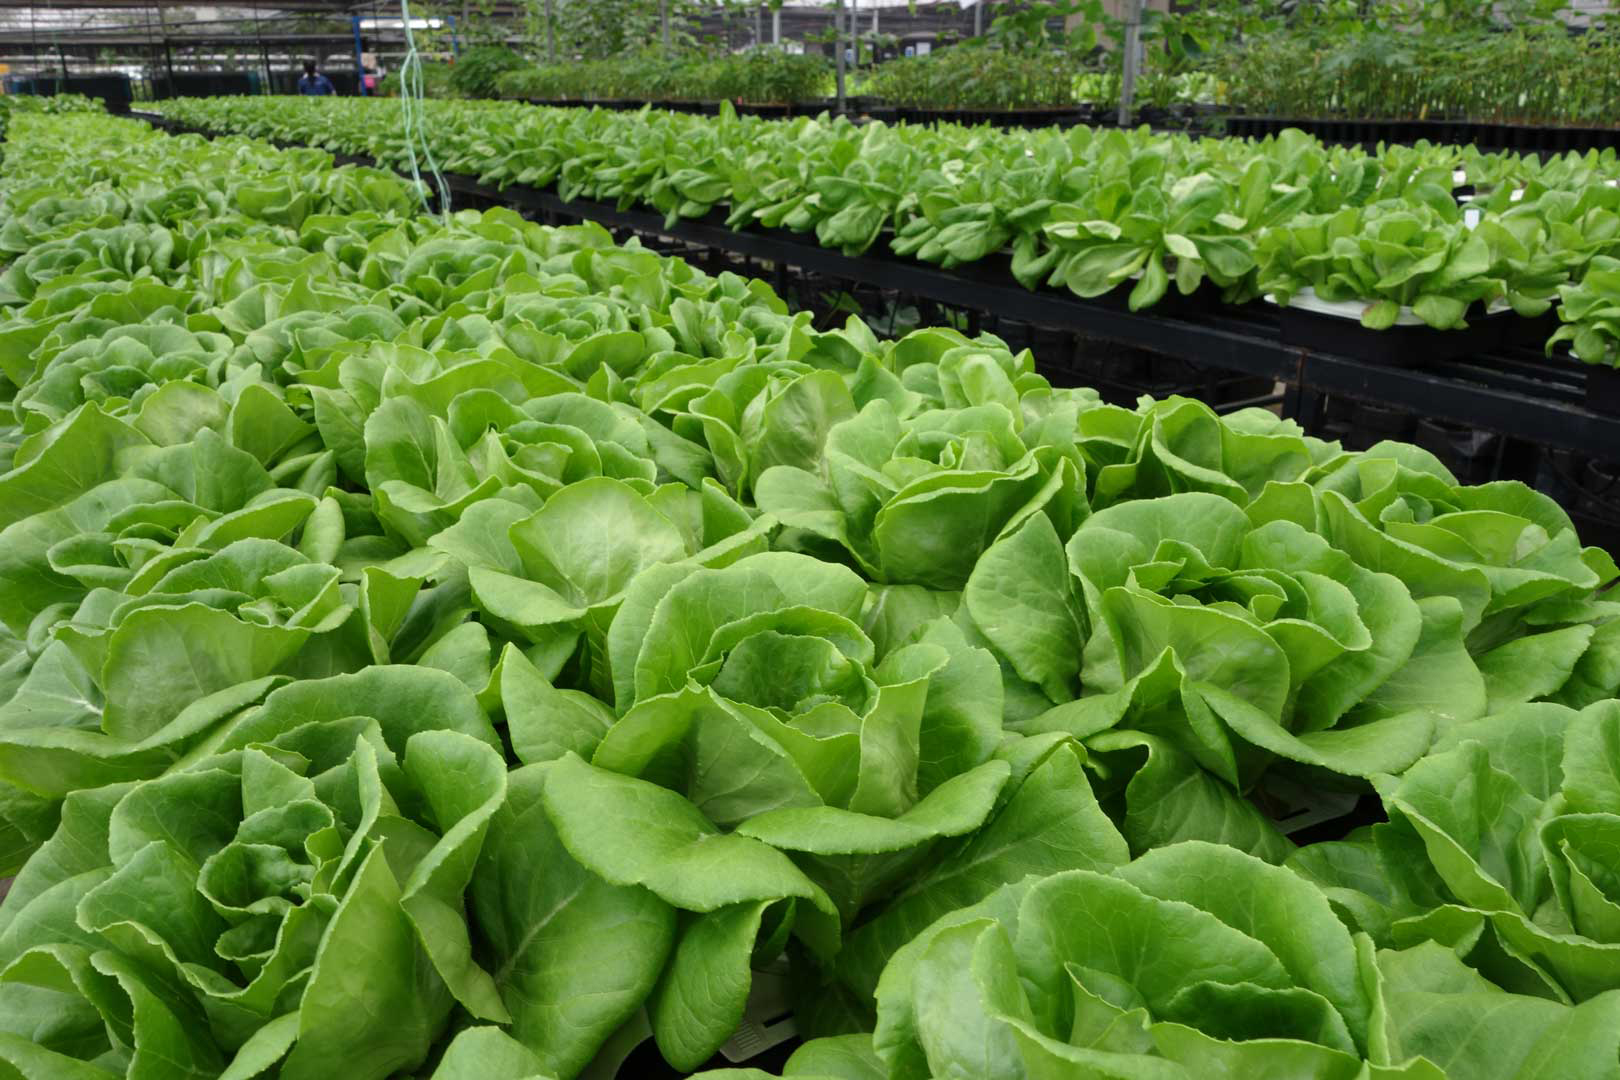 Growing lettuce in a pot - Lettuce Grown Using Our Plant Driven Technology On The Rooftopthere Is No Nutrient And Water Recycling For Growing Lettuce With Our Plant Driven System